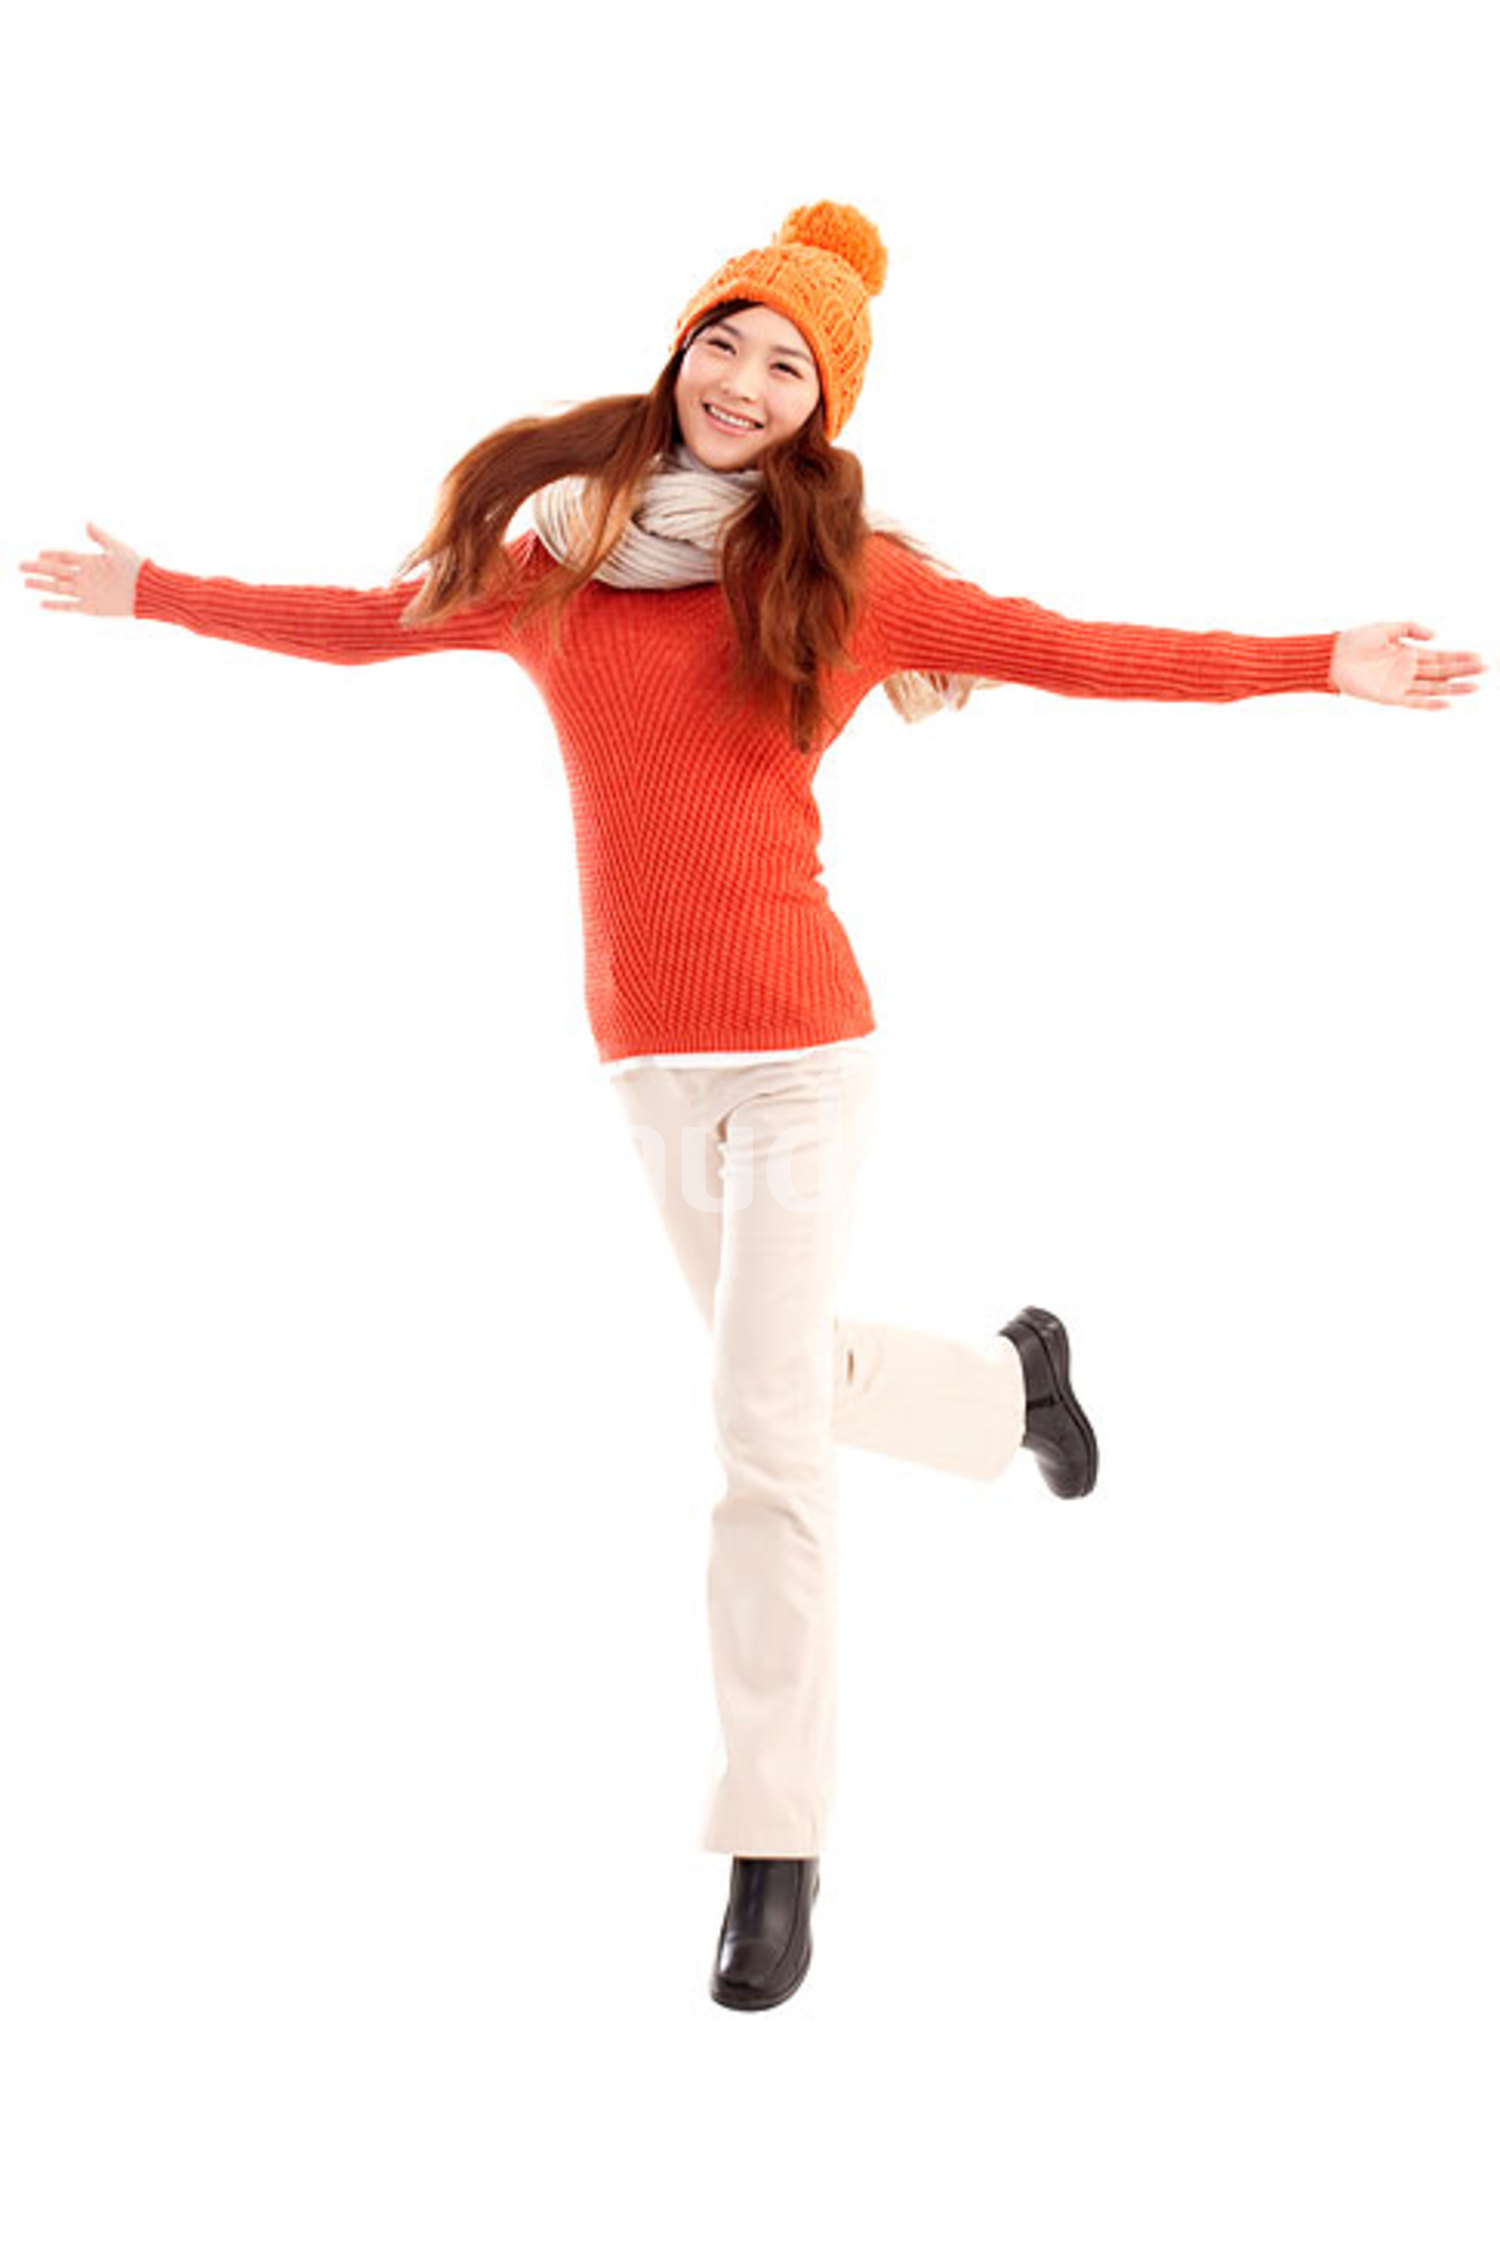 Happy young Chinese woman arms outstretched